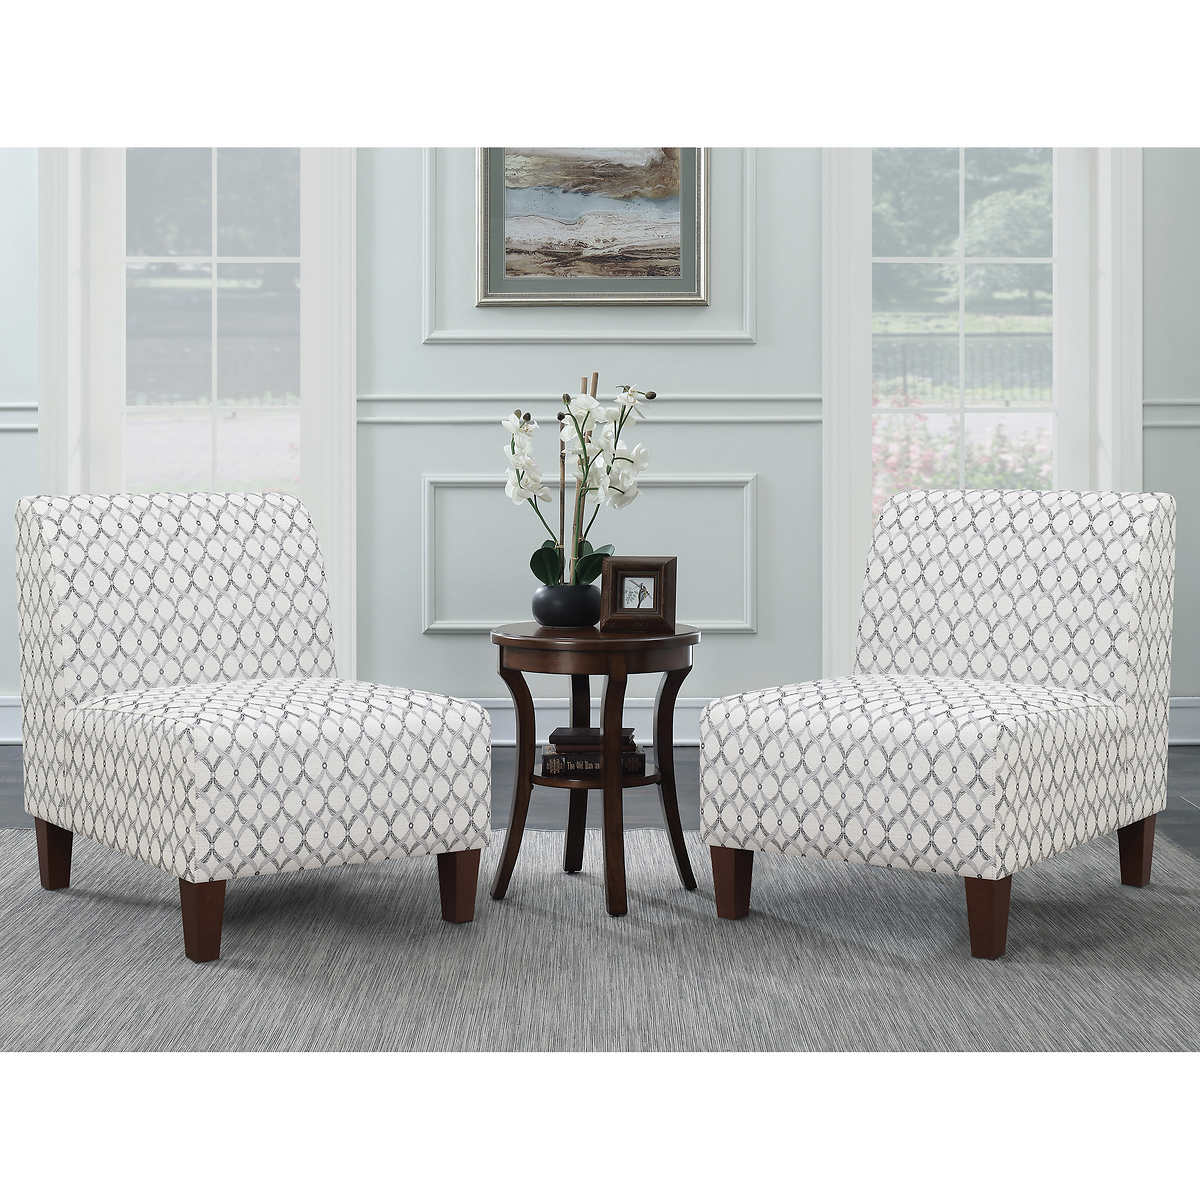 ave six piece fabric chair and table set service accent side with one drawer curved mirrored bedside distressed white high top dining couch armless long narrow behind round linen